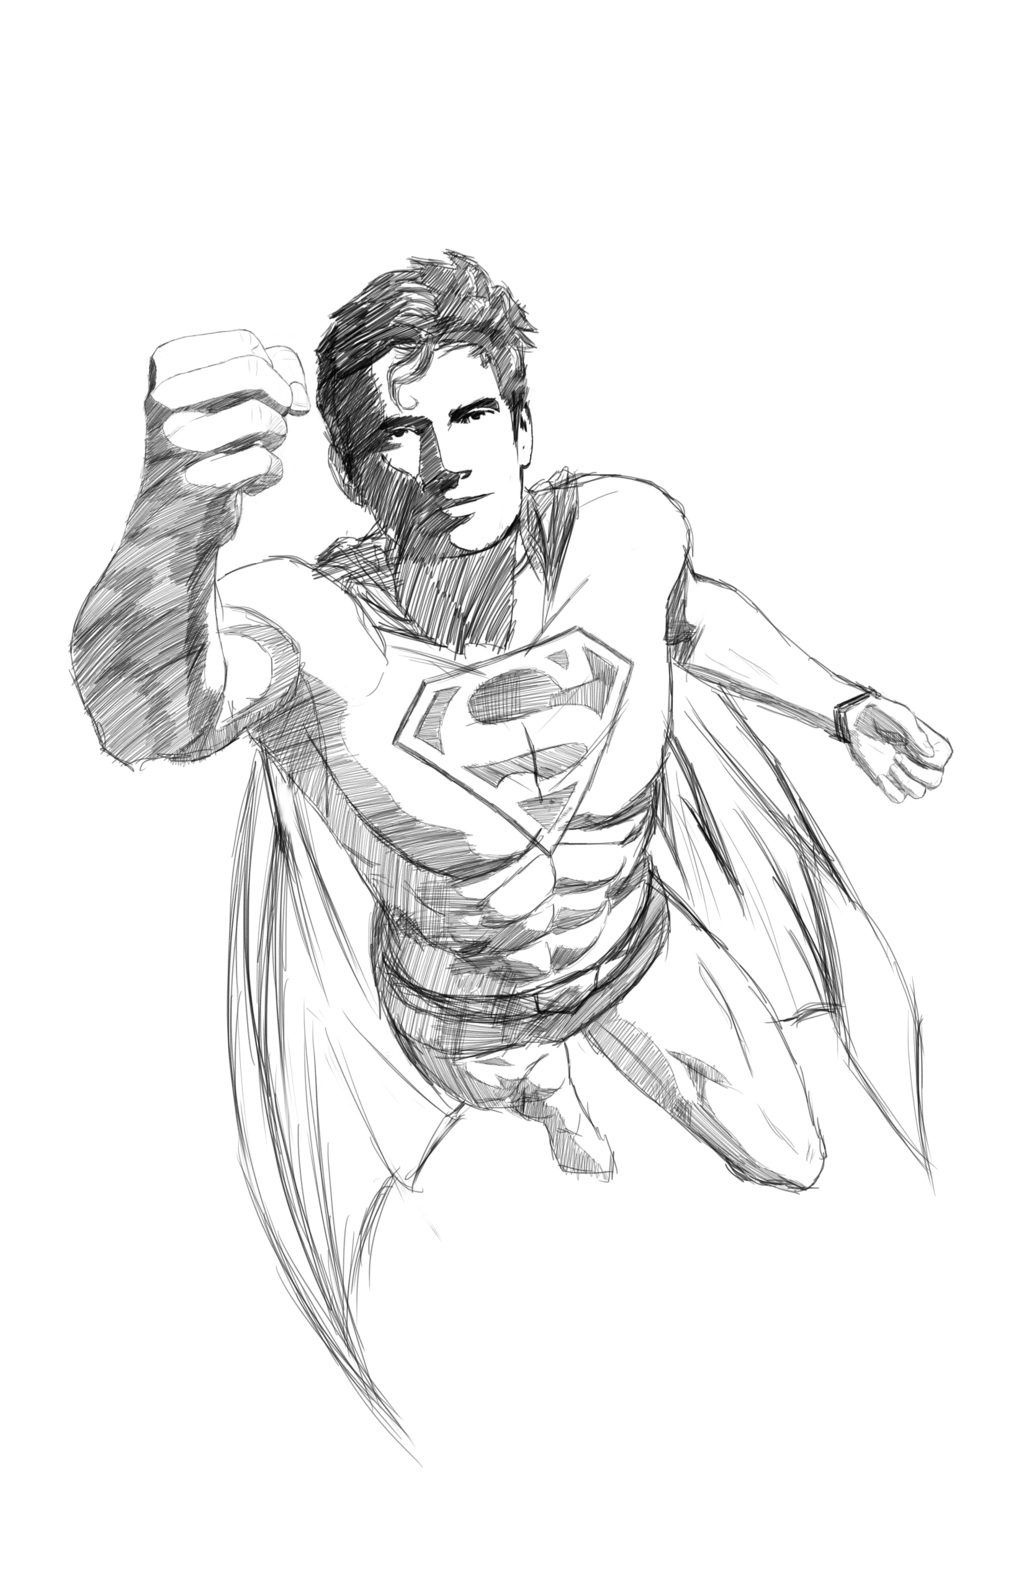 Drawn superman foreshortened Superman Flying by Sketch Sketch